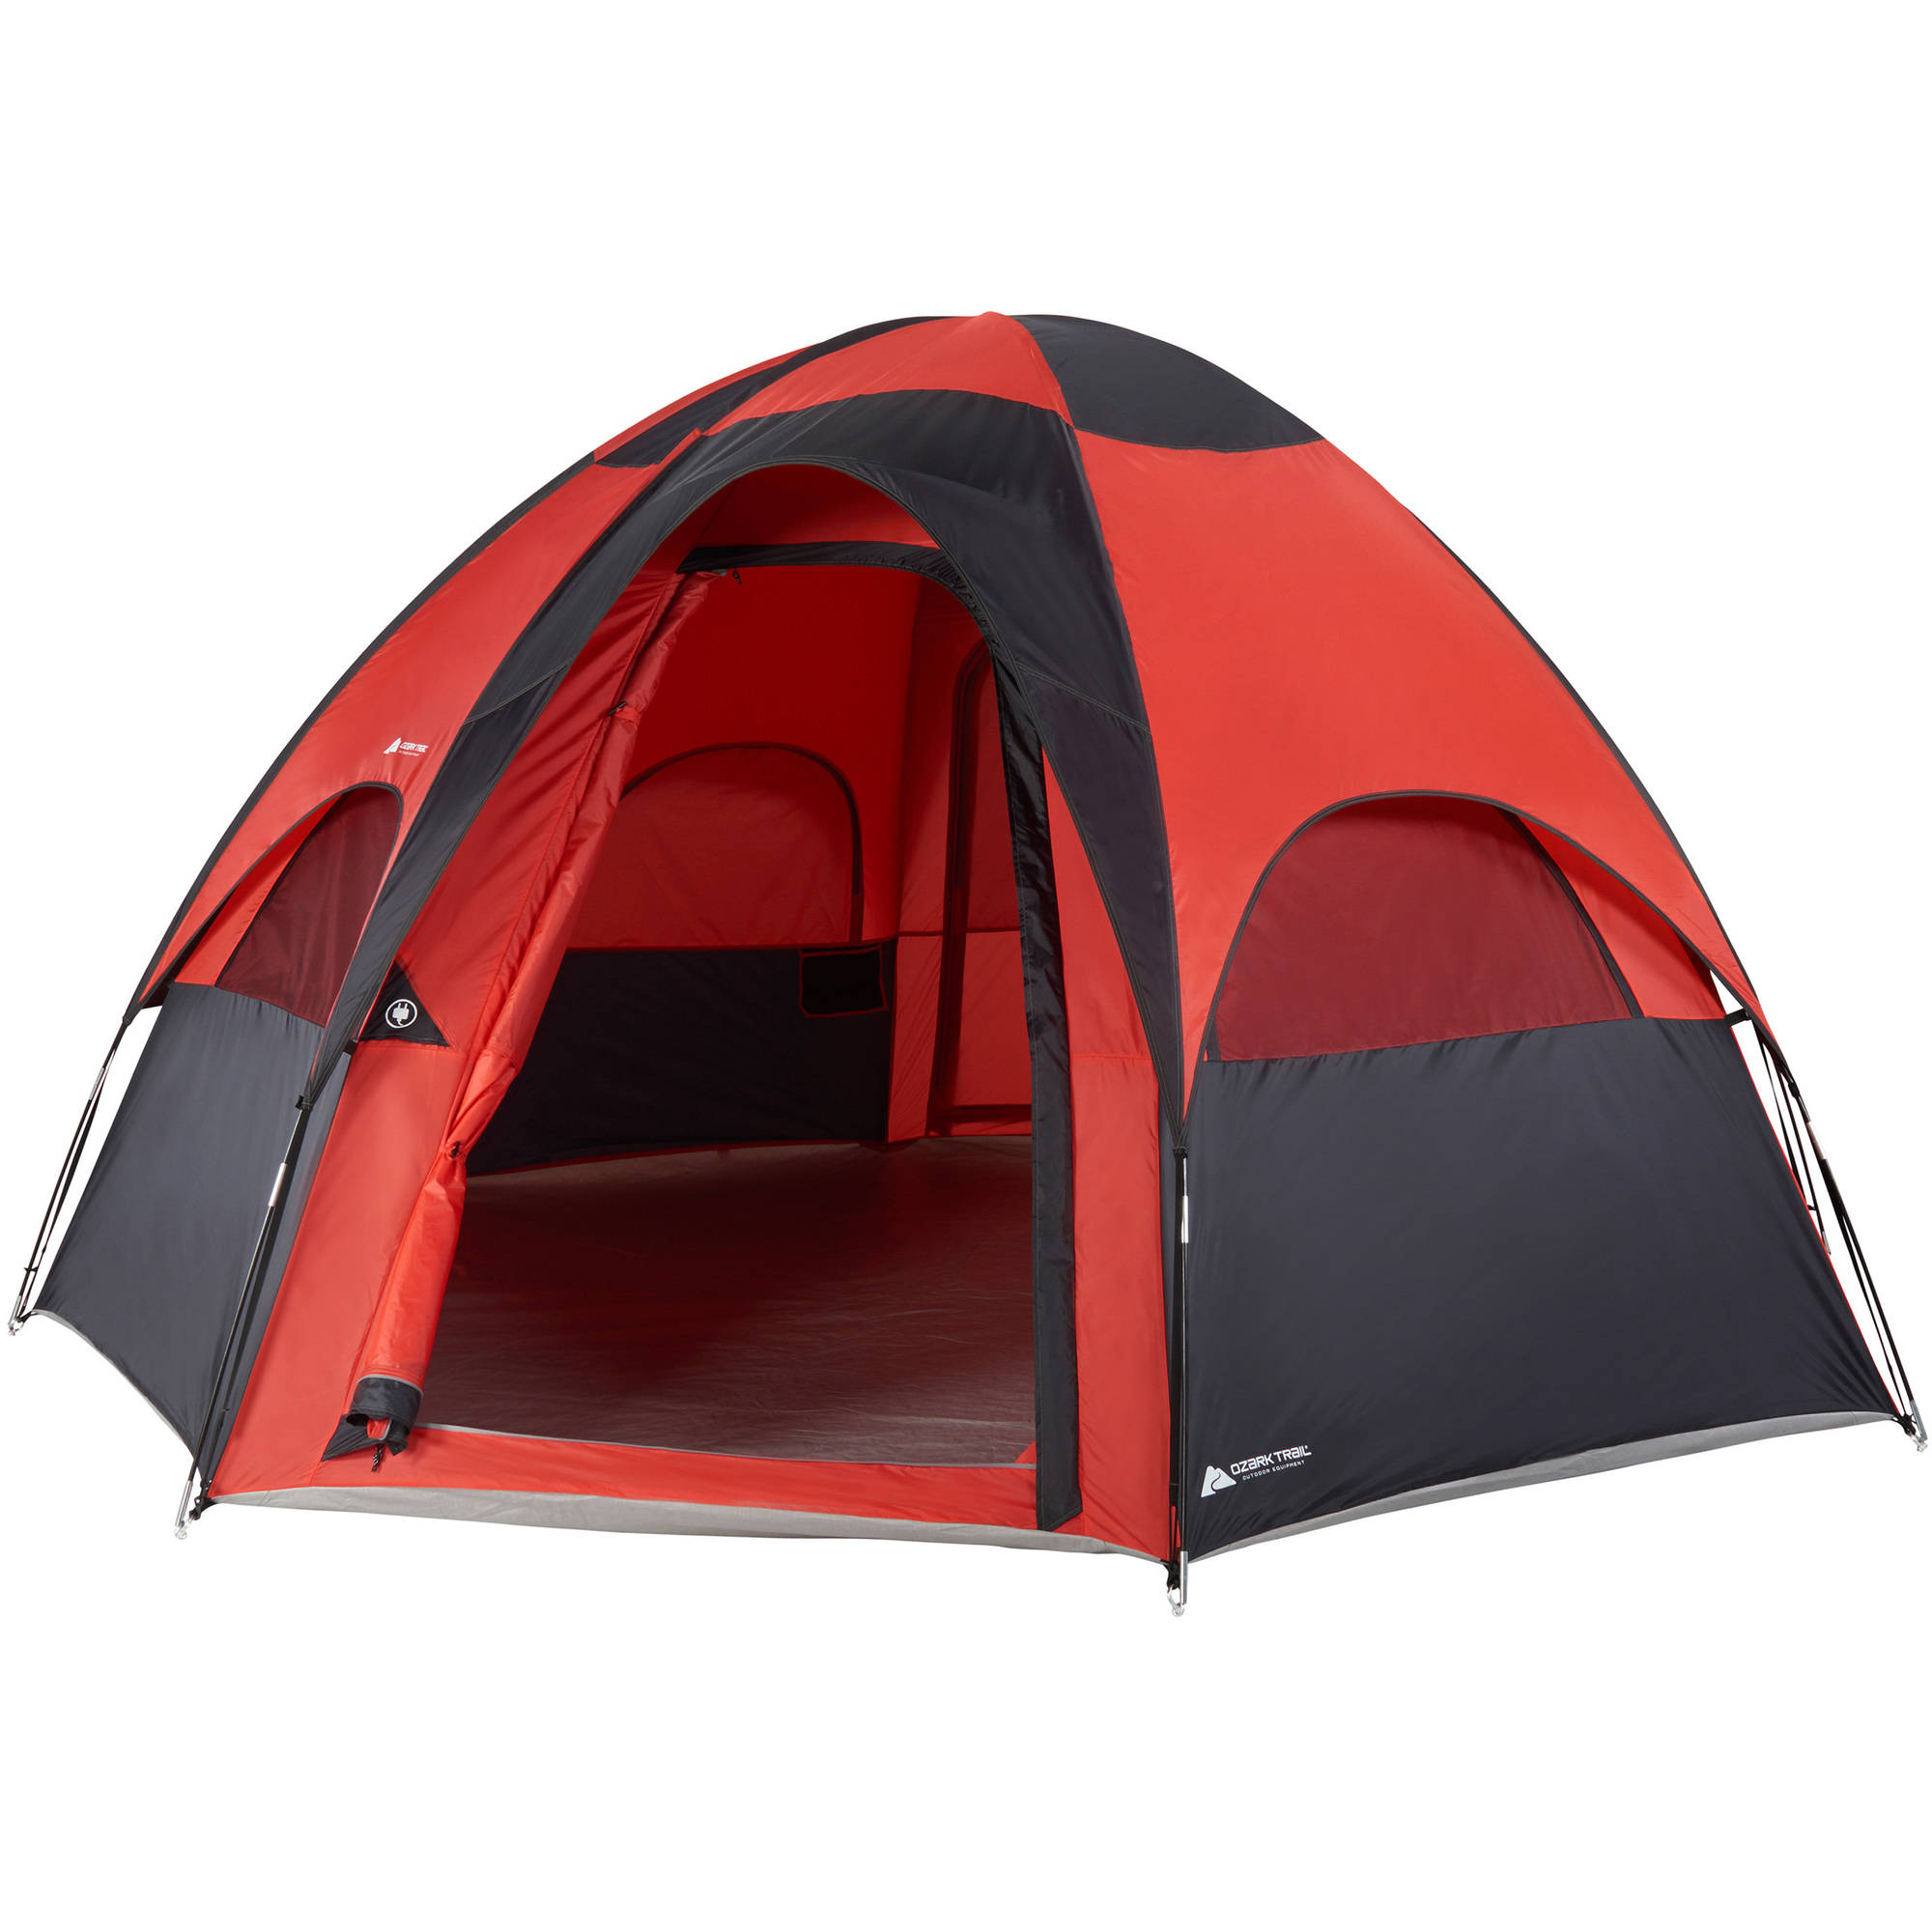 Ozark Trail 8-Person Dome Tent  sc 1 st  Walmart & Ozark Trail 8-Person Dome Tent - Walmart.com